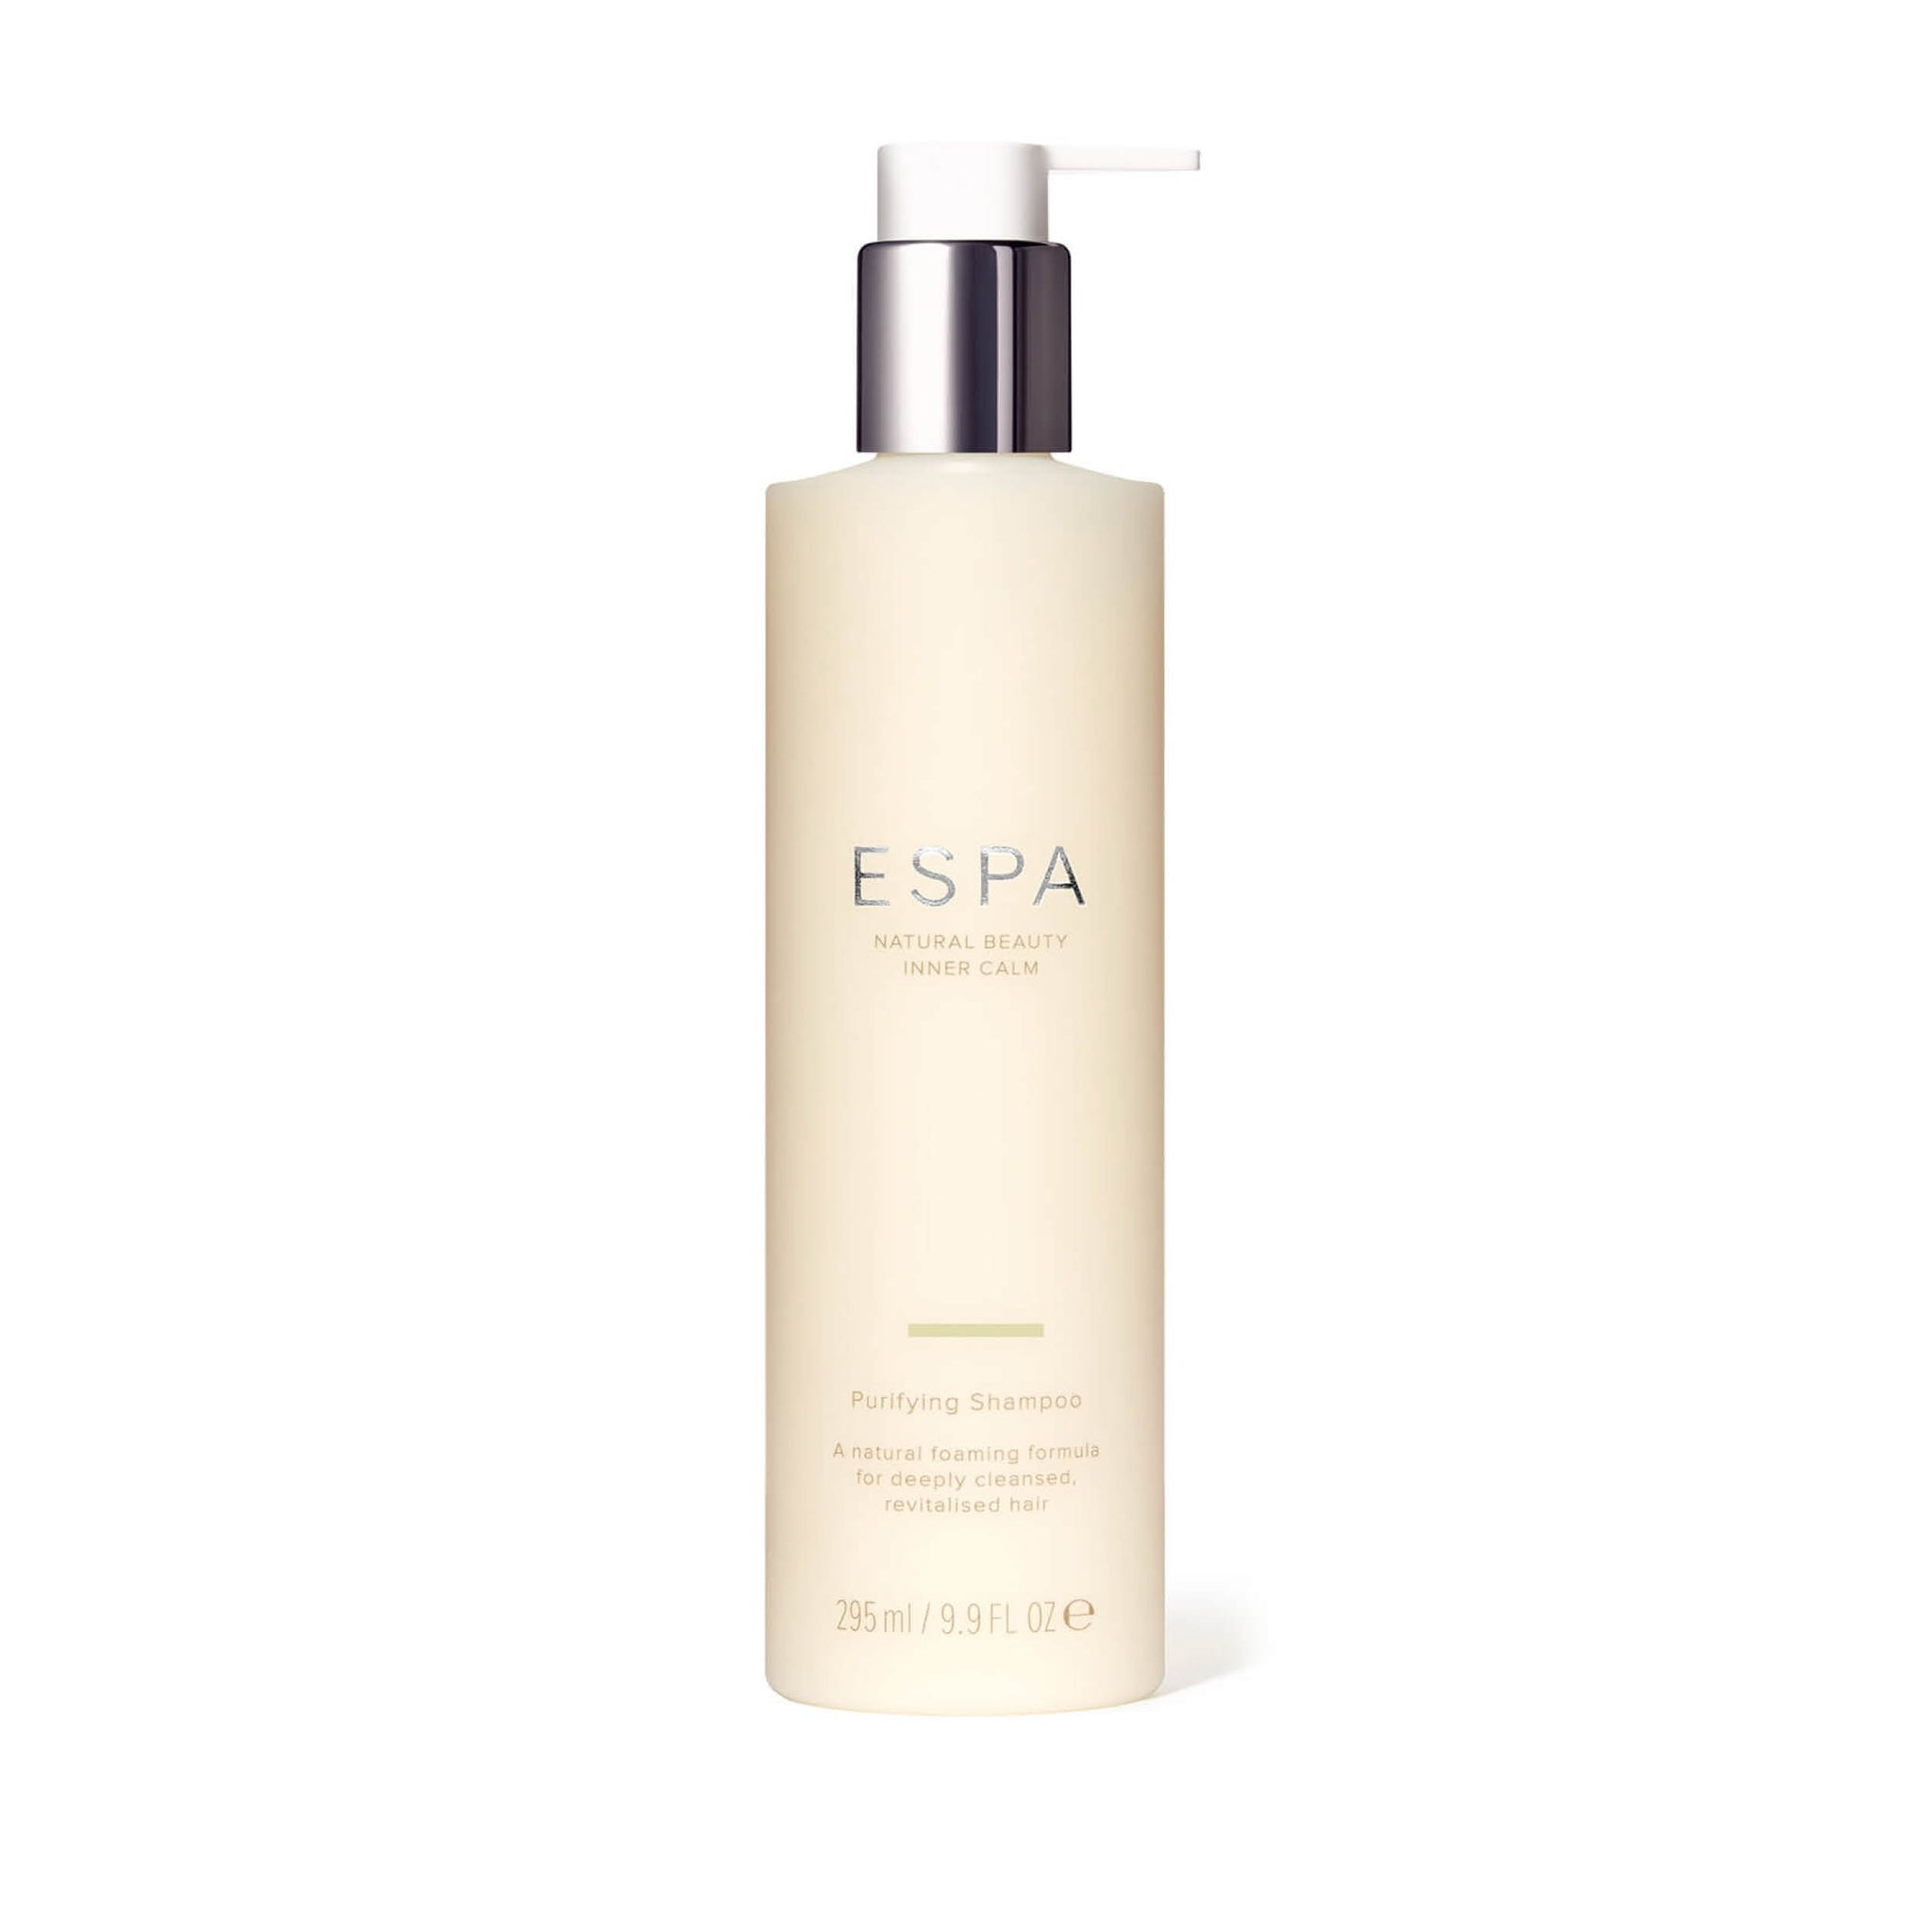 ESPA Purifying Shampoo